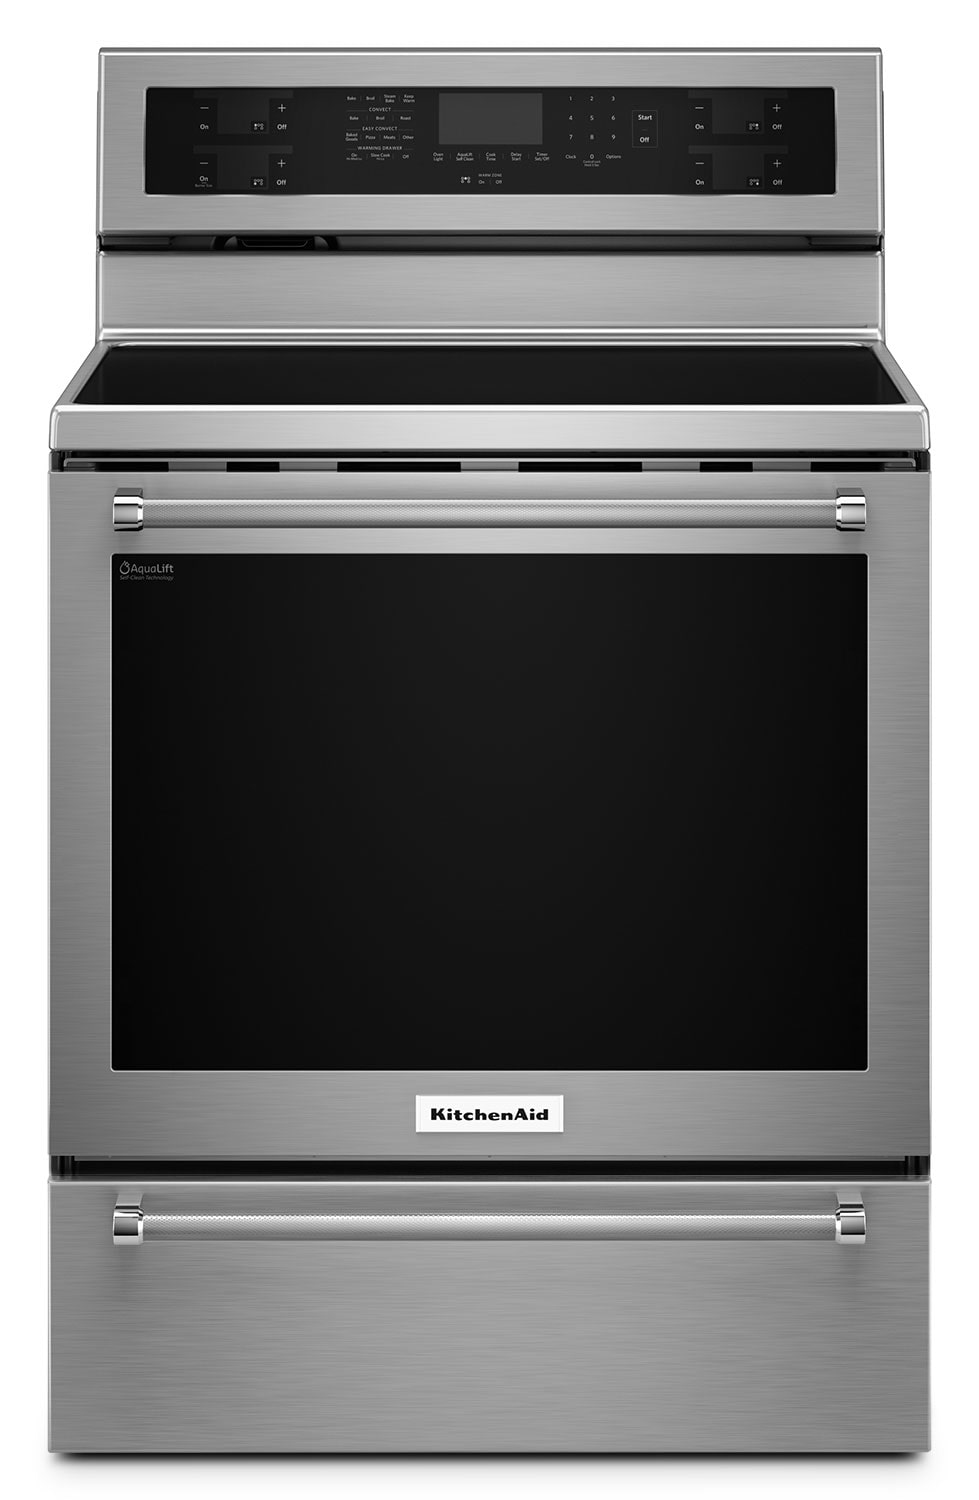 KitchenAid Stainless Steel Freestanding Electric Convection Range (6.4 Cu. Ft.) - YKFES530ESS